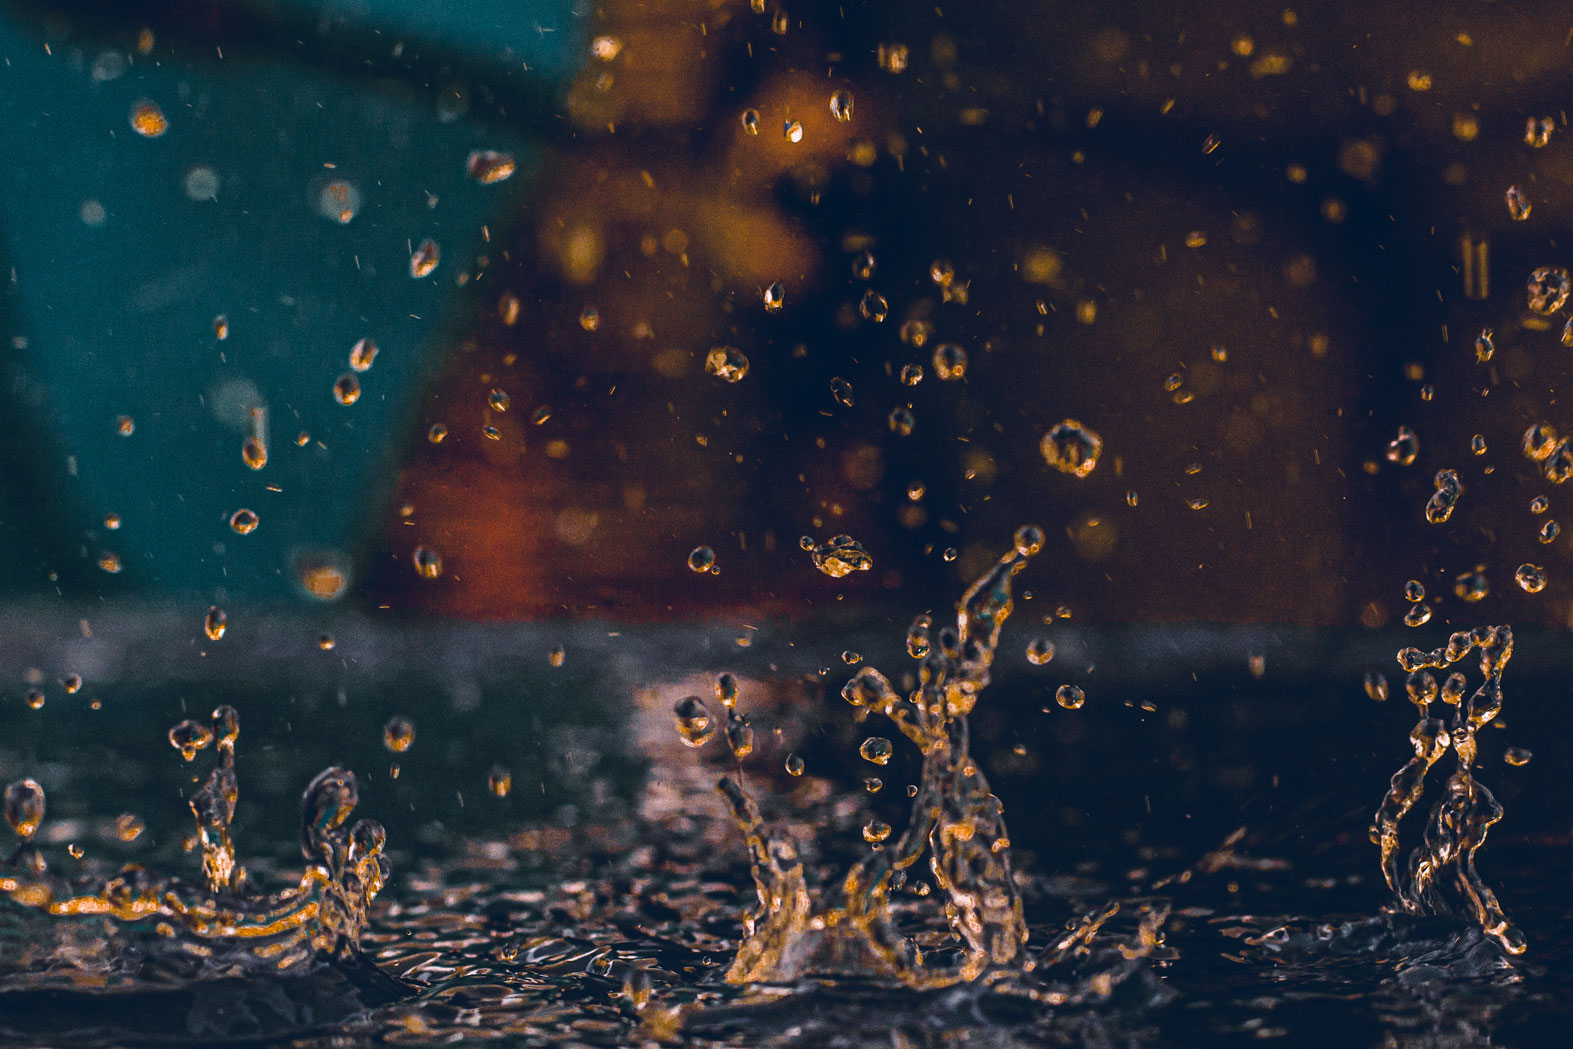 Golden Drops Trinity - Photography by Cedric Blei - friendmade.fm